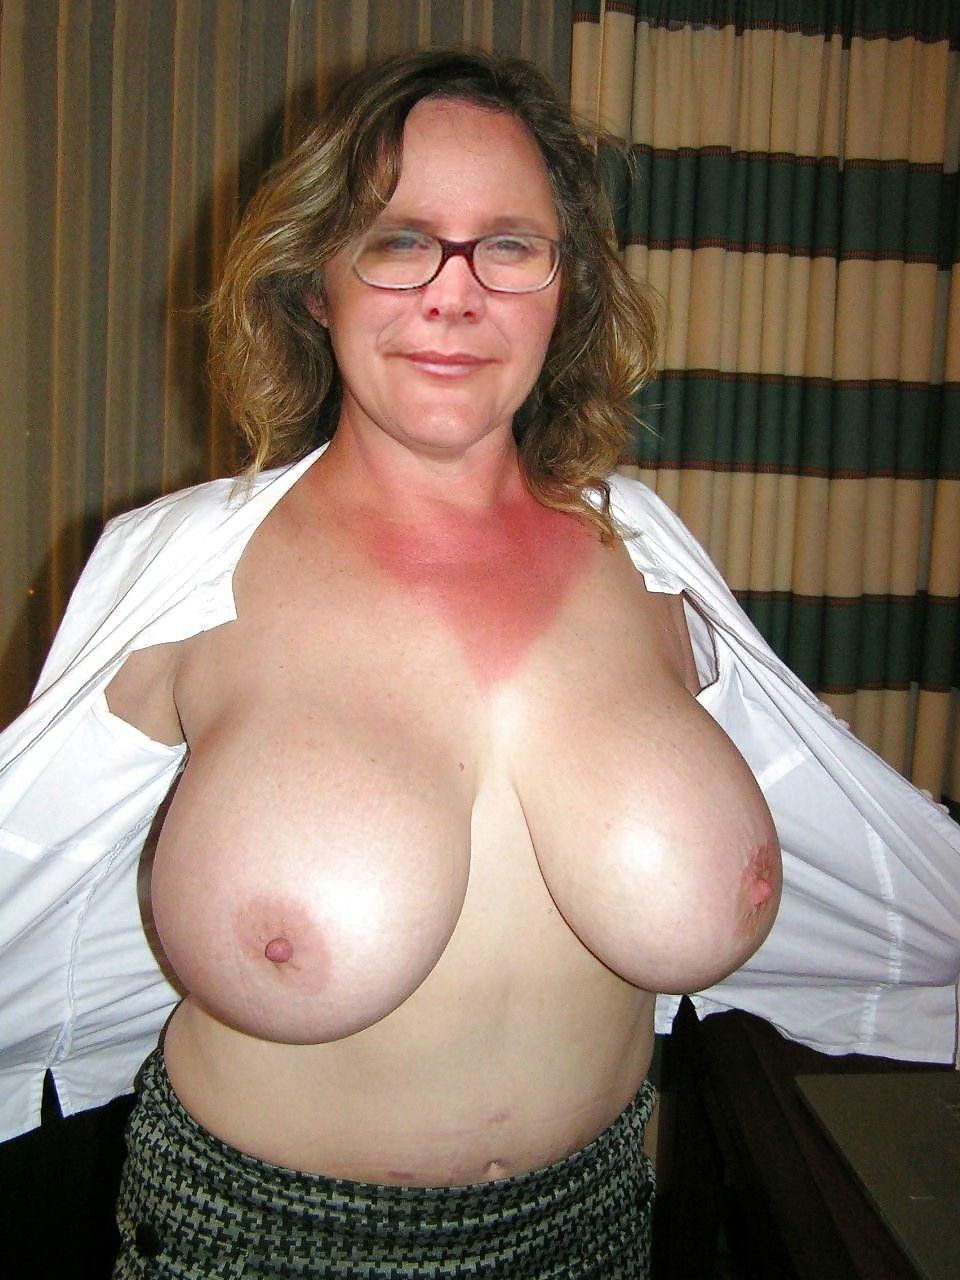 Grandmas big boobs naked agree